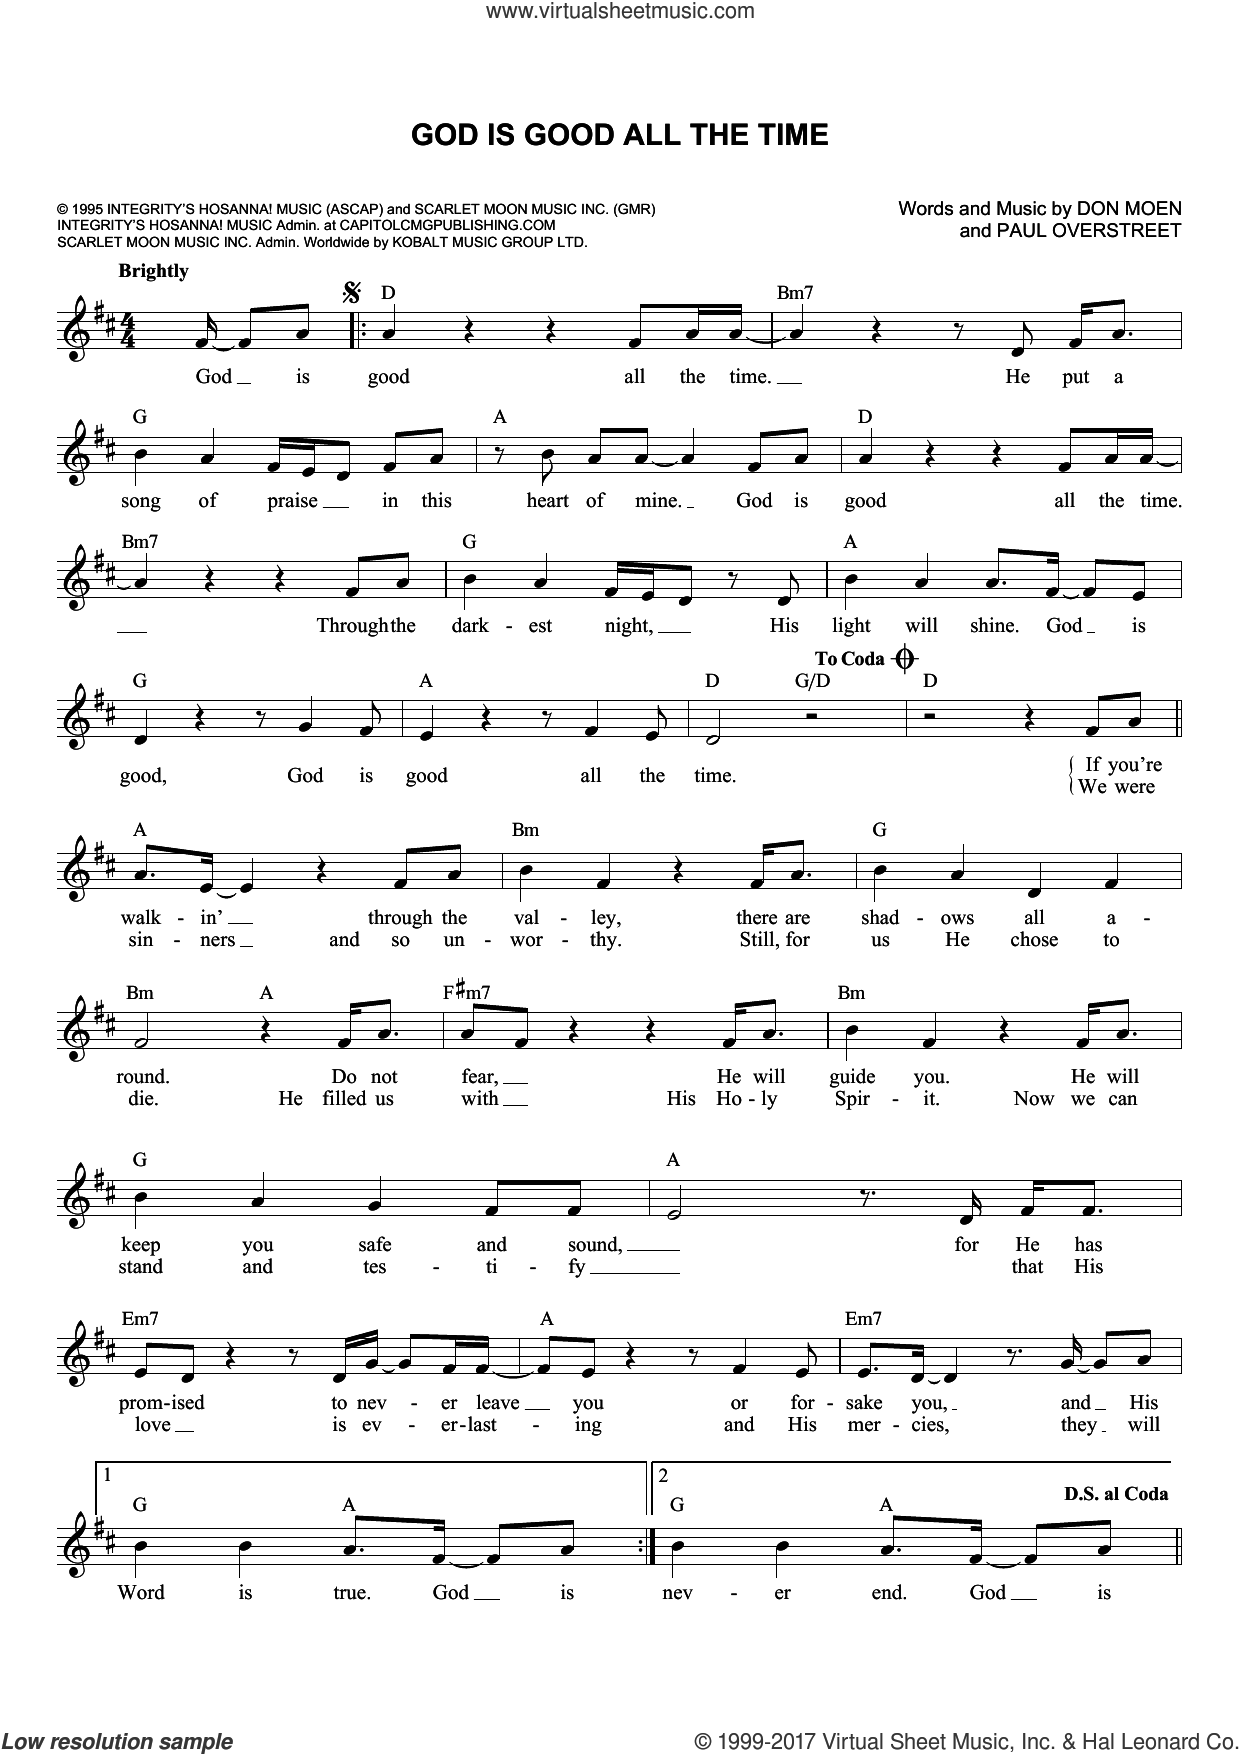 God Is Good All The Time sheet music for voice and other instruments (fake book) by Don Moen and Paul Overstreet, intermediate voice. Score Image Preview.